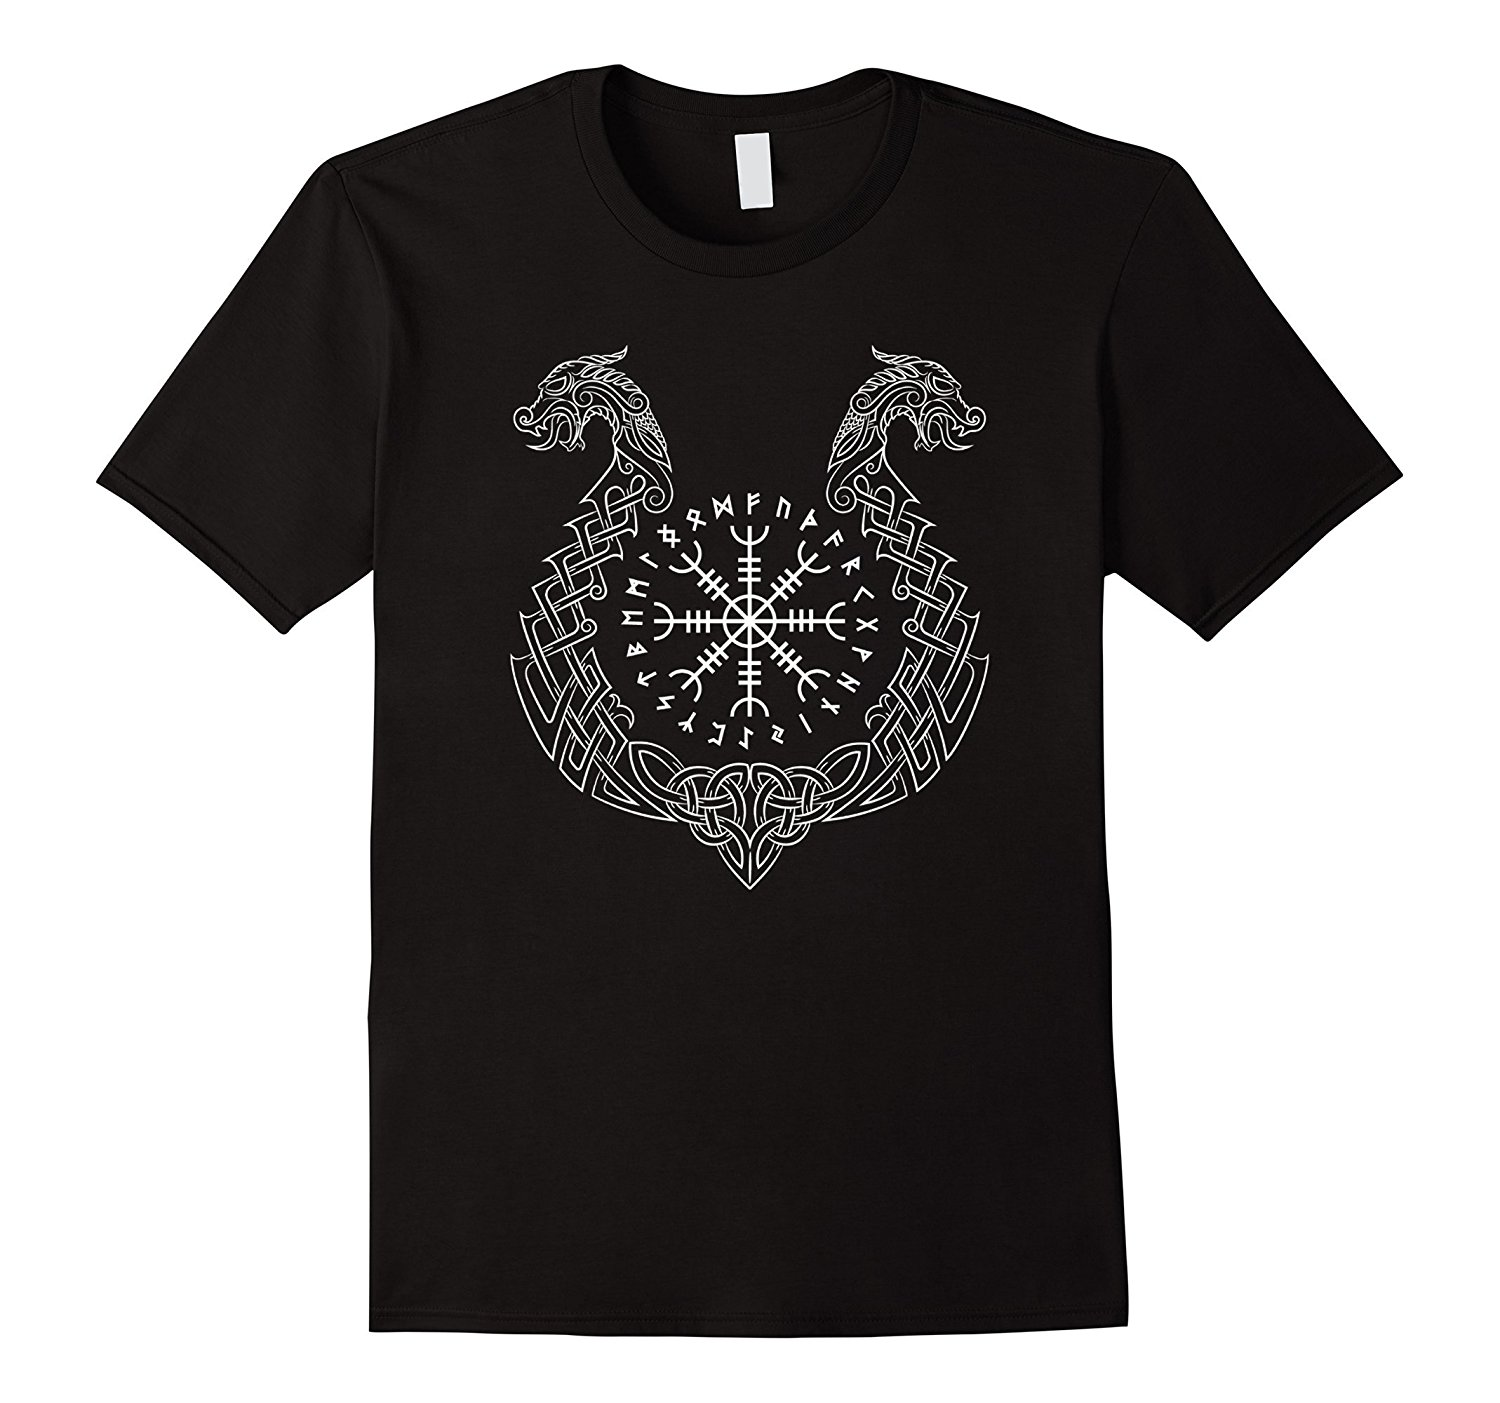 Viking Helm Of Awe T-Shirt T Shirt Hot Sale Clothes Funny Clothing Casual Short Sleeve T Shirts  Middle Aged Top Tee